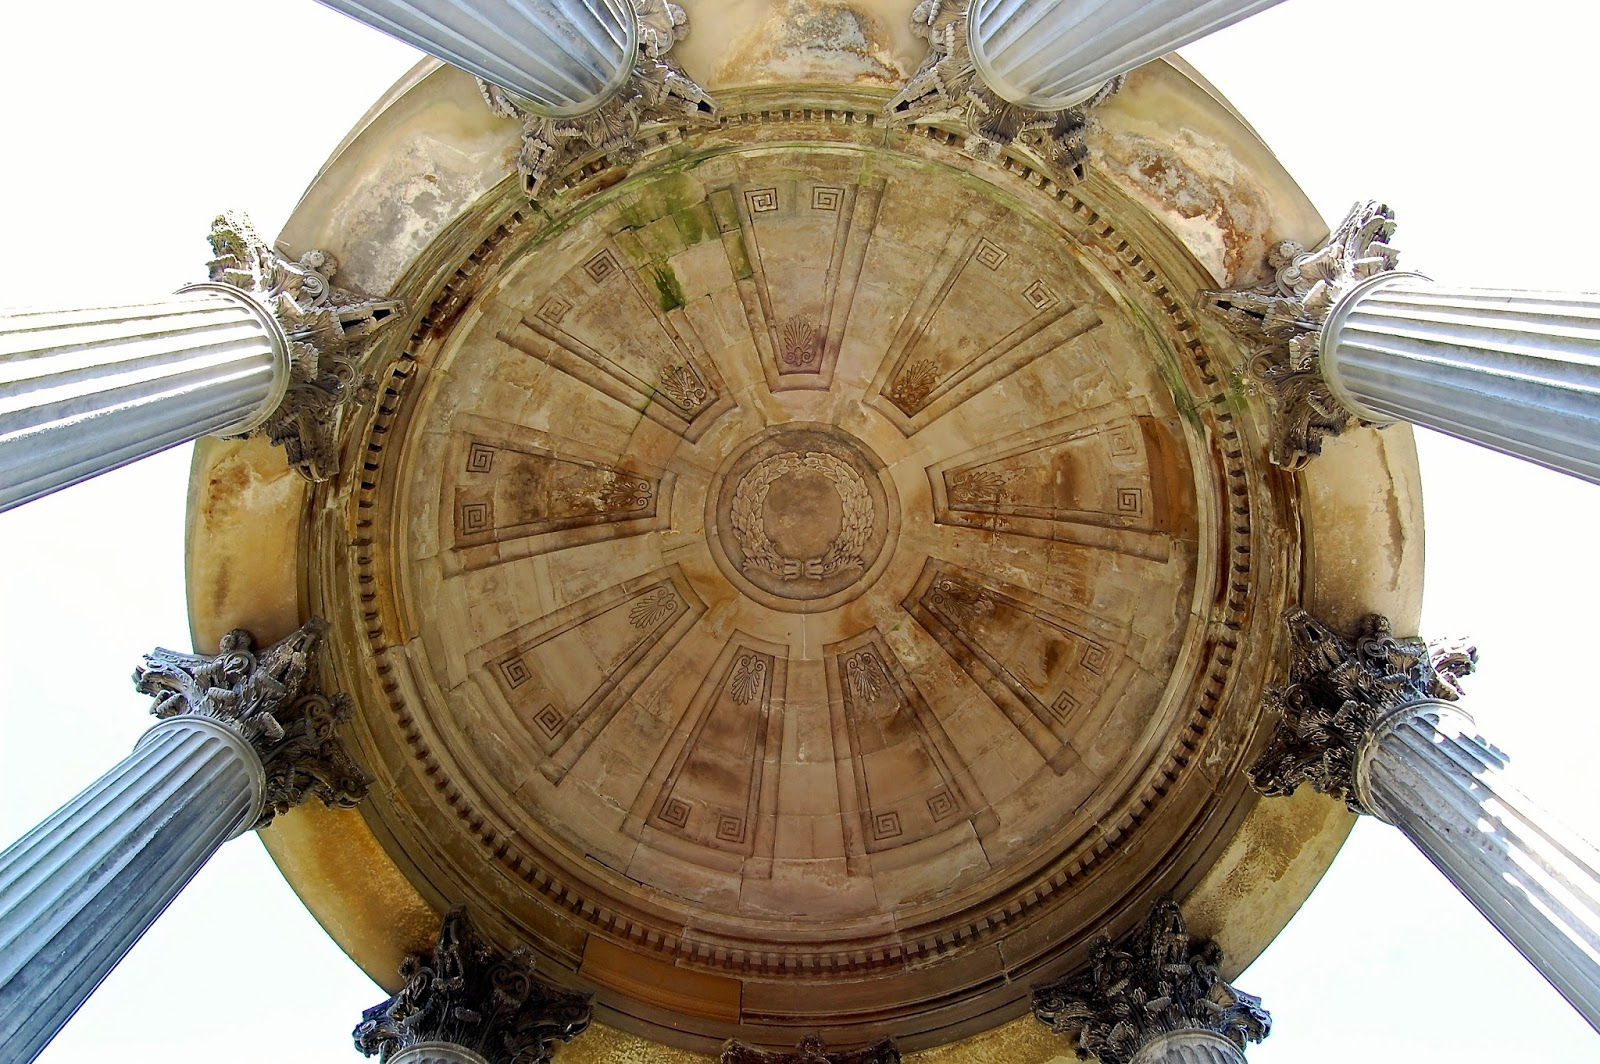 Soffit of the Burns Monument dome